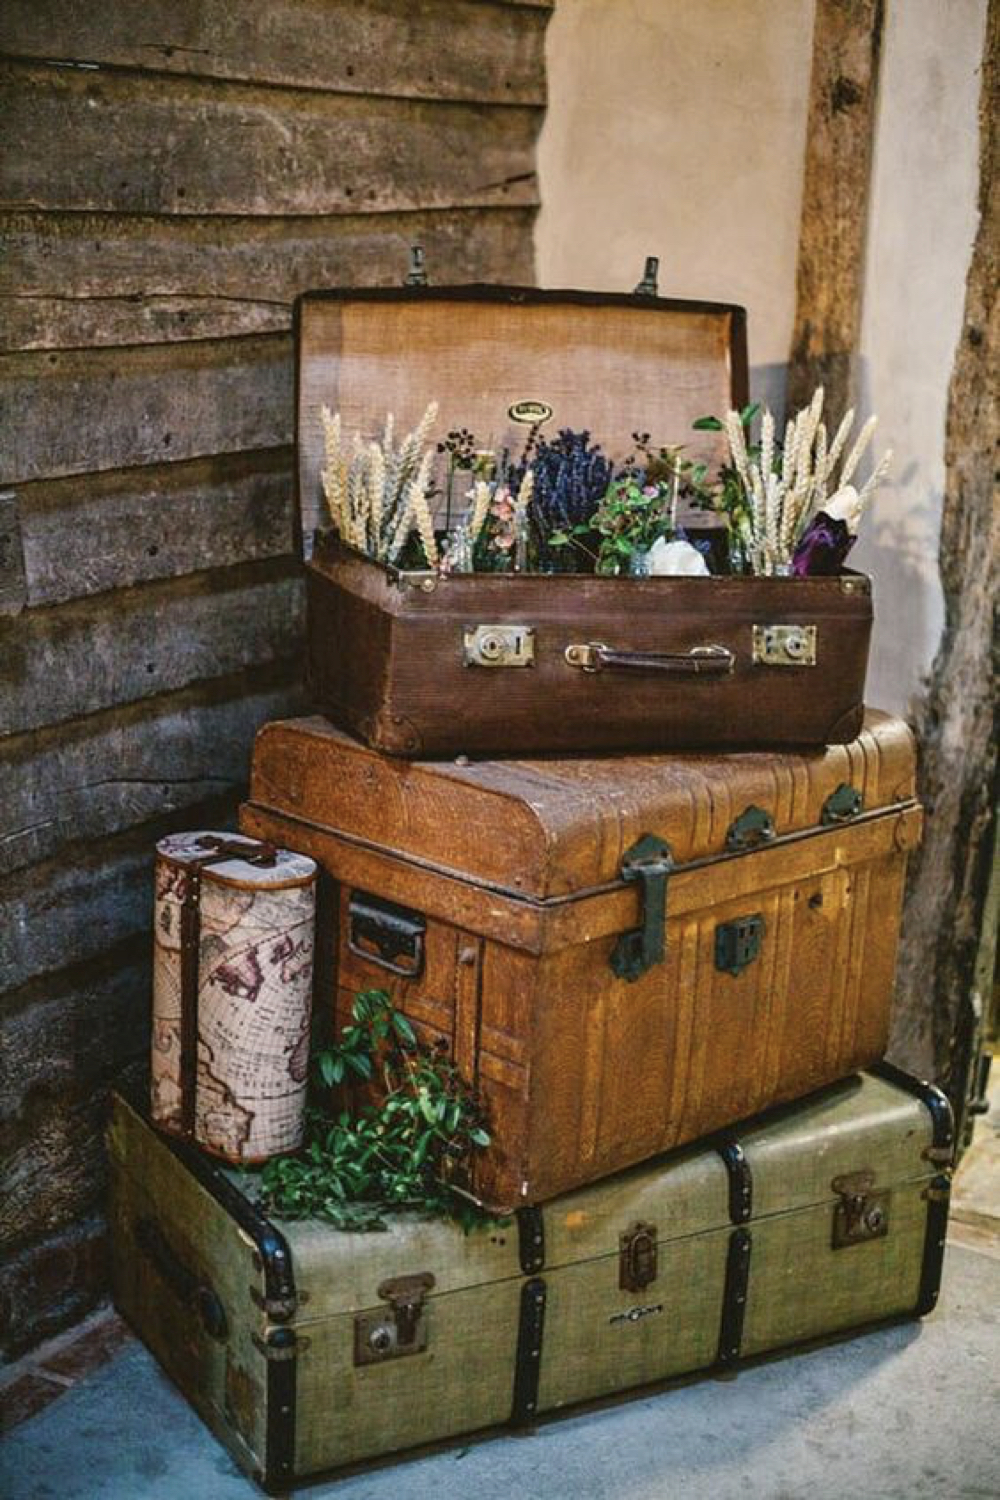 deco brocante valise ancienne recup 3